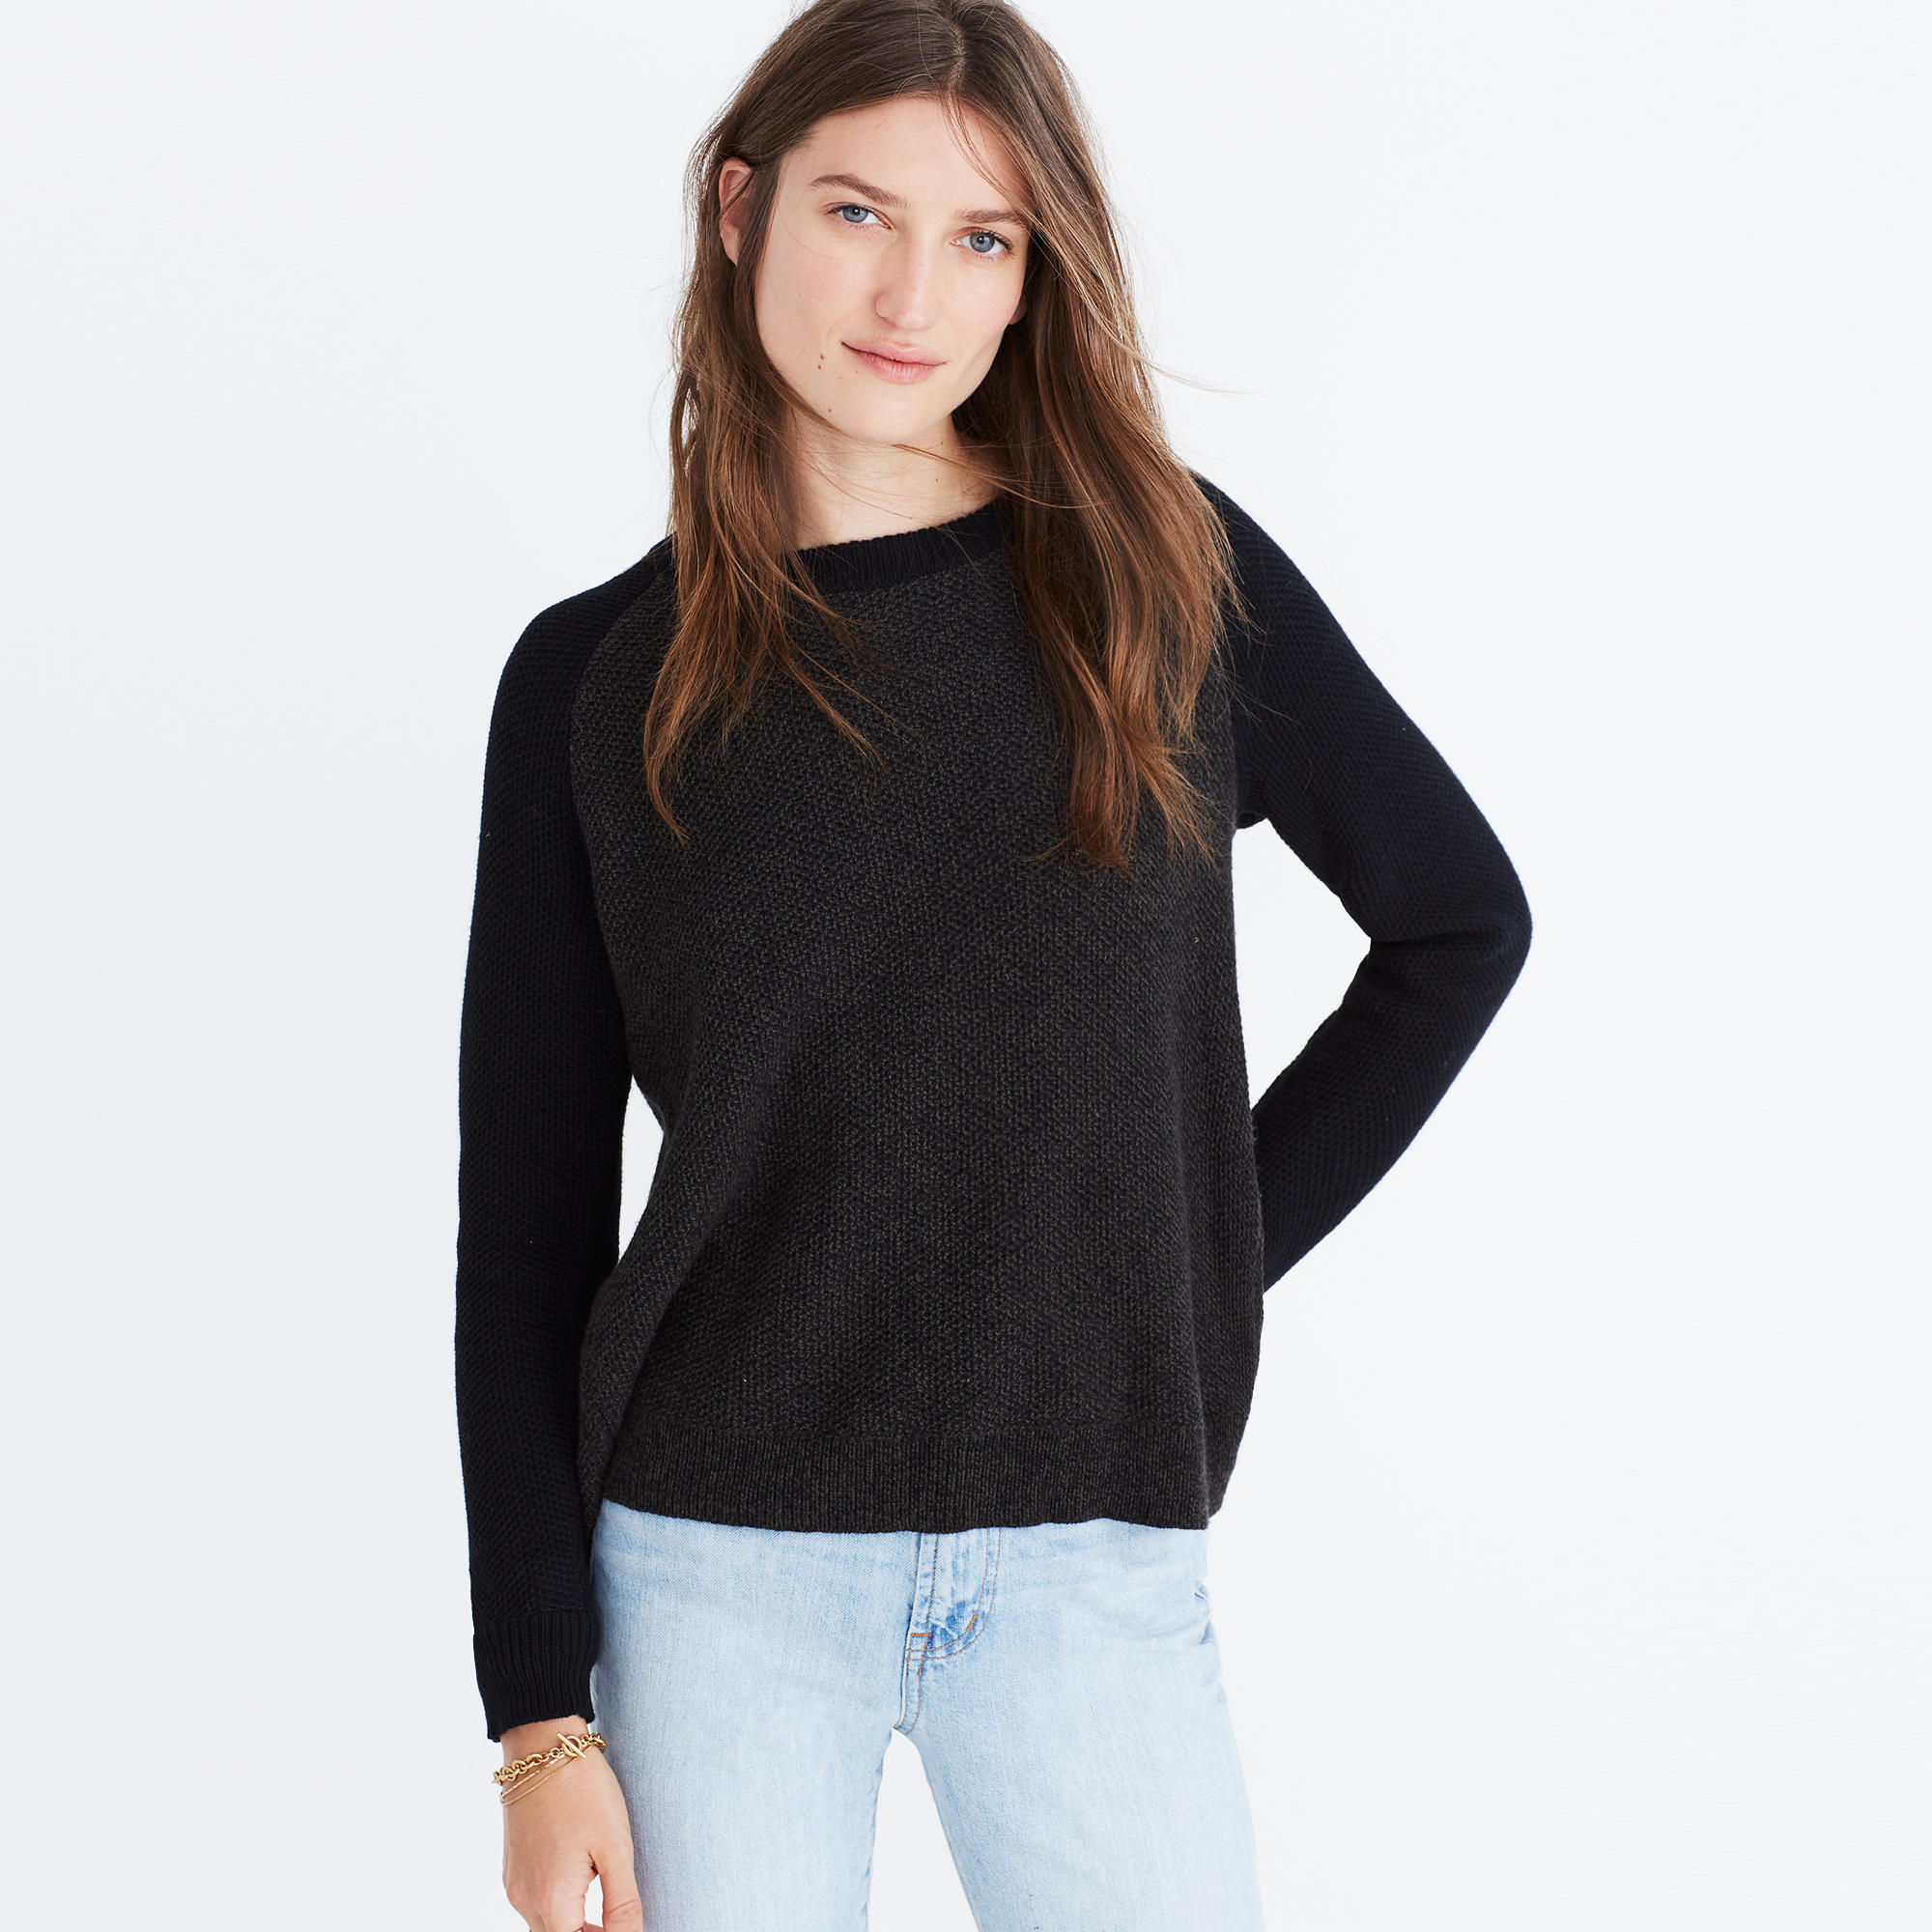 Province Cross-Back Pullover Sweater in Colorblock : shopmadewell ...